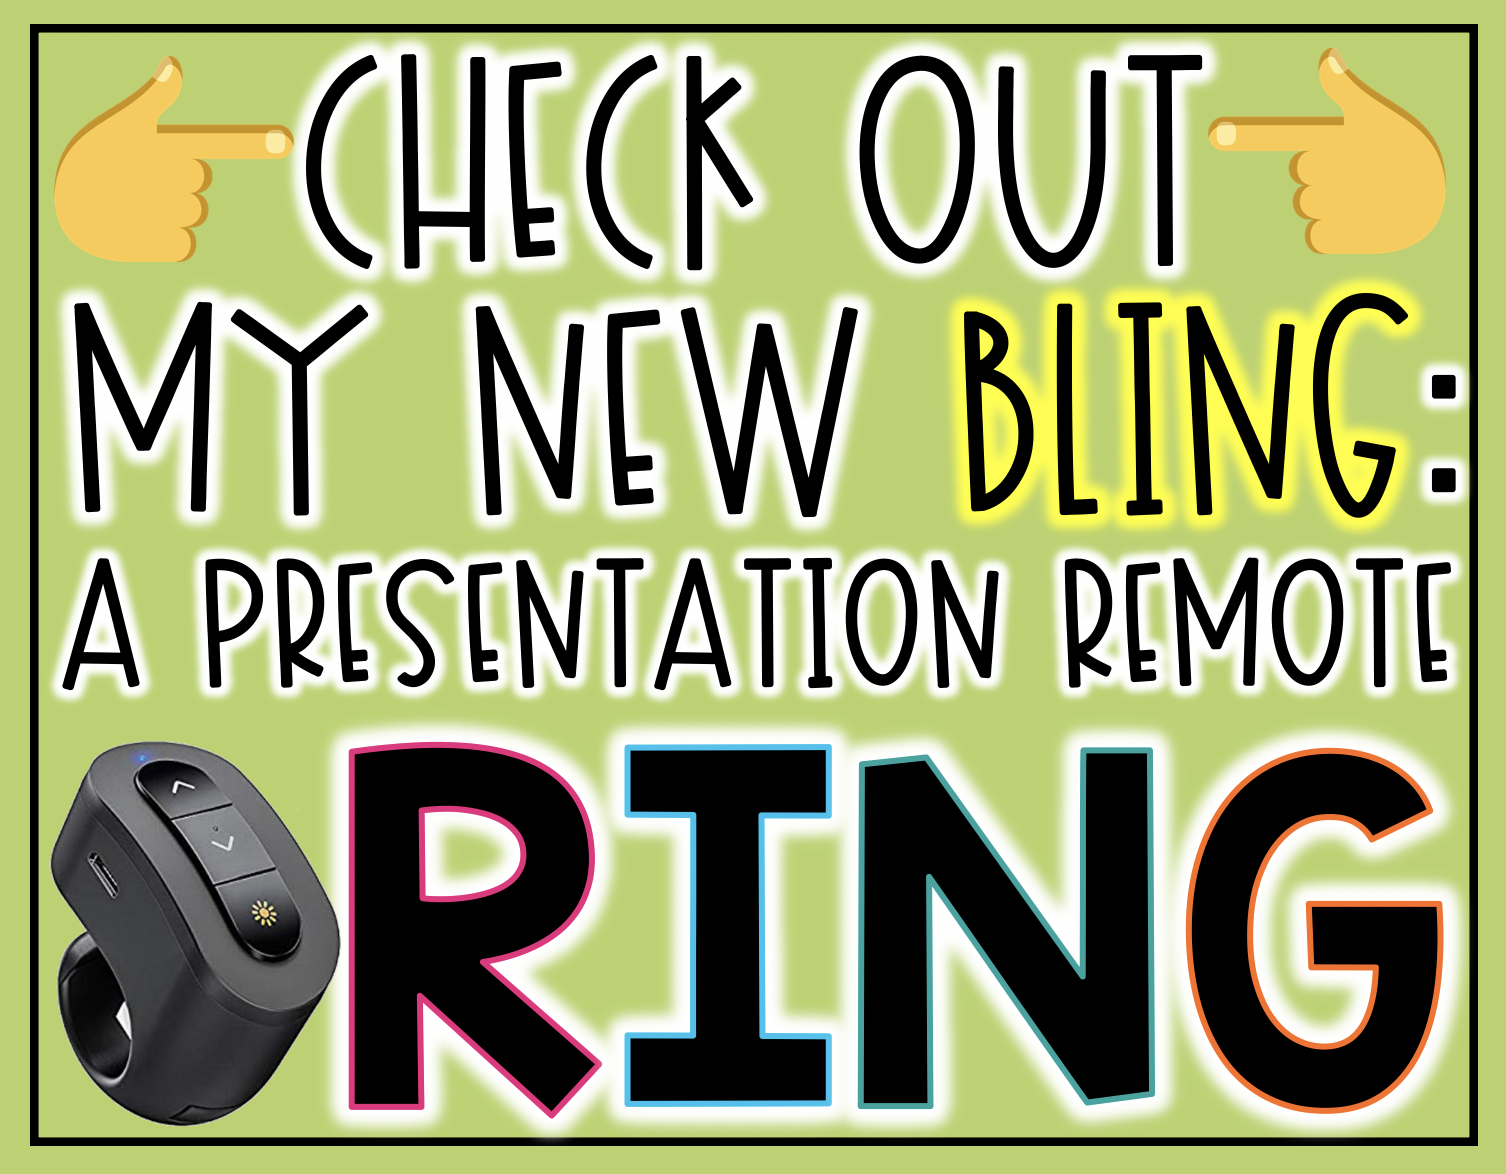 Never lose your presentation remote again while presenting with this presentation remote ring! It is compatible will all kinds of devices and programs. Come learn all about it!